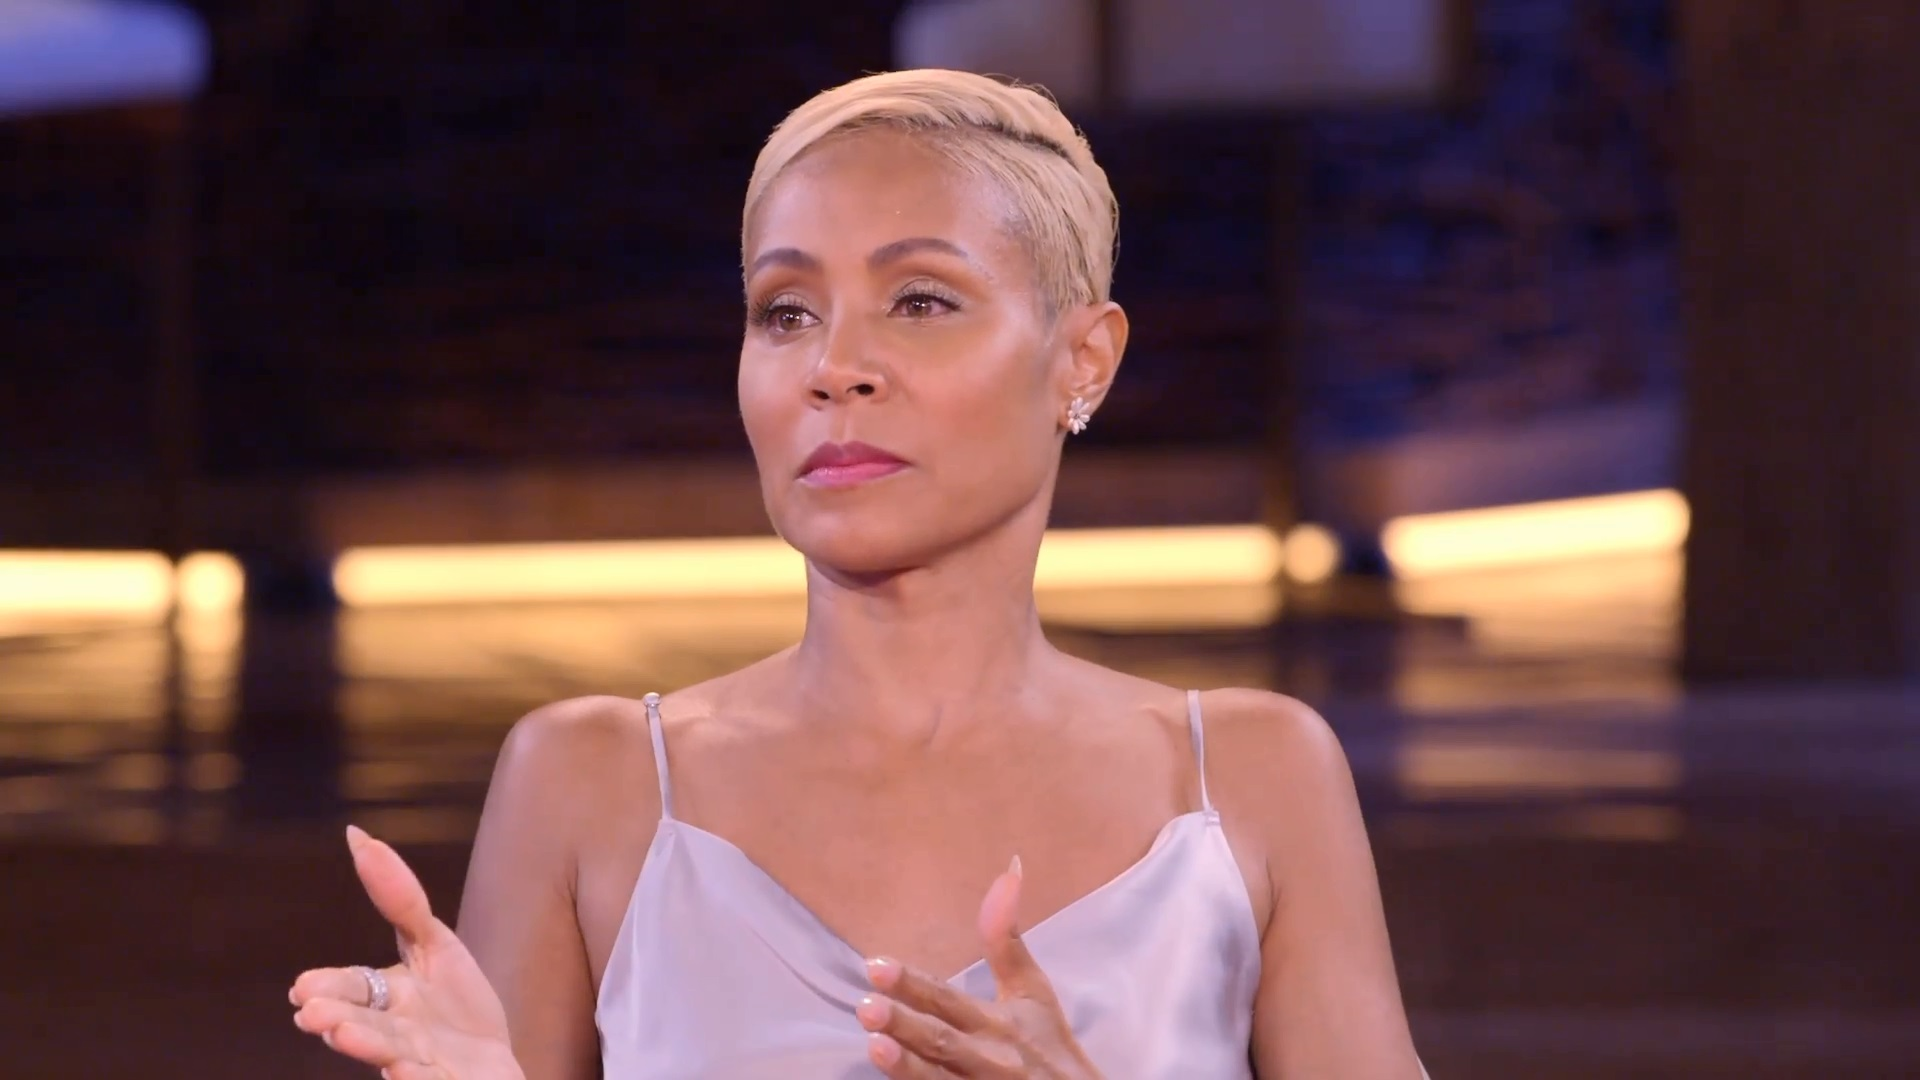 Jada Pinkett Smith had an 'unhealthy relationship with porn' before Will Smith marriage